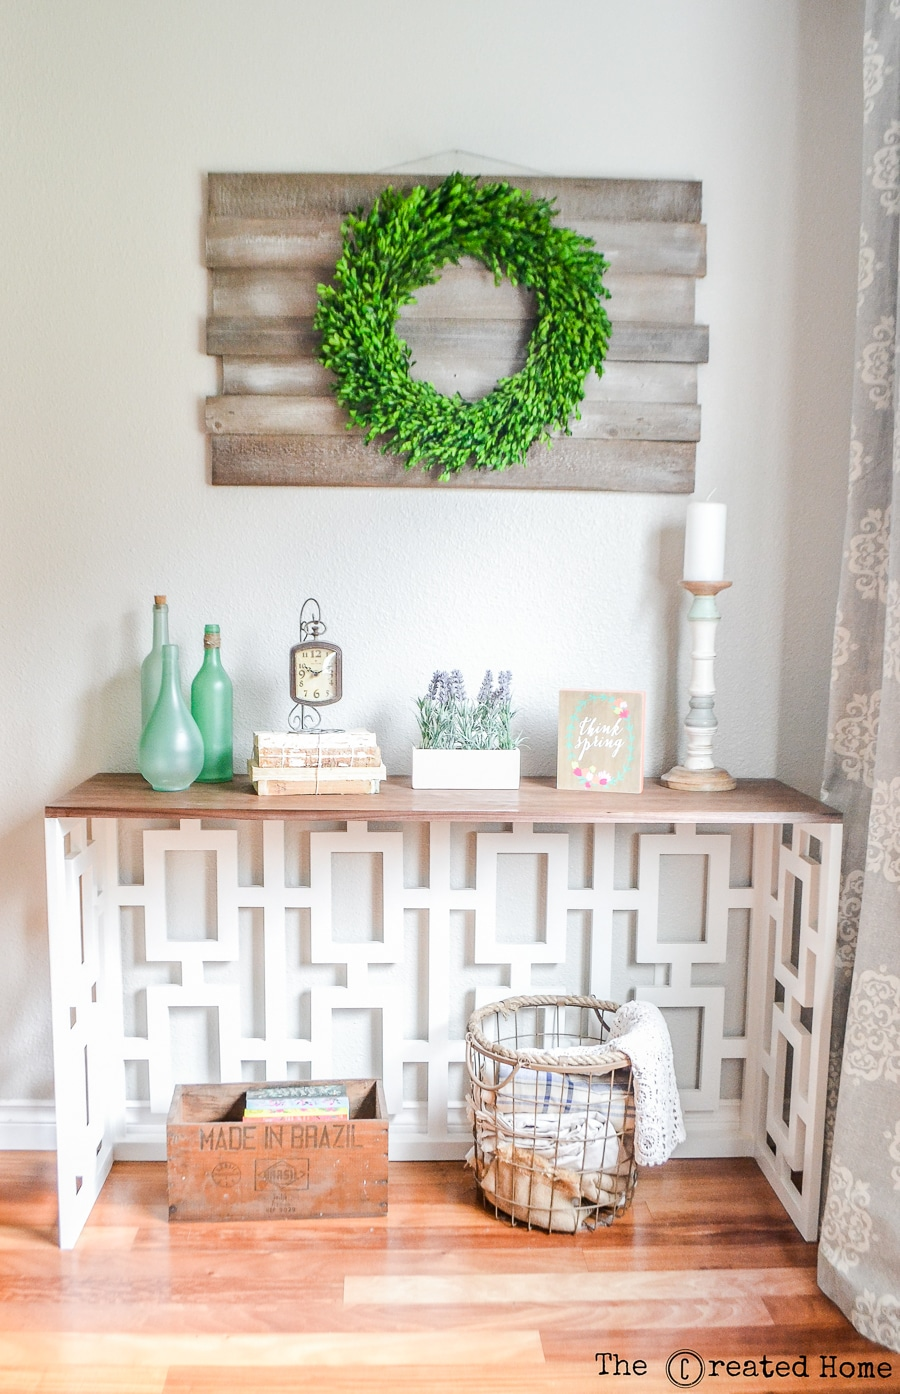 How to build a DIY console table with a stunning fretwork detail - plans by Jen Woodhouse